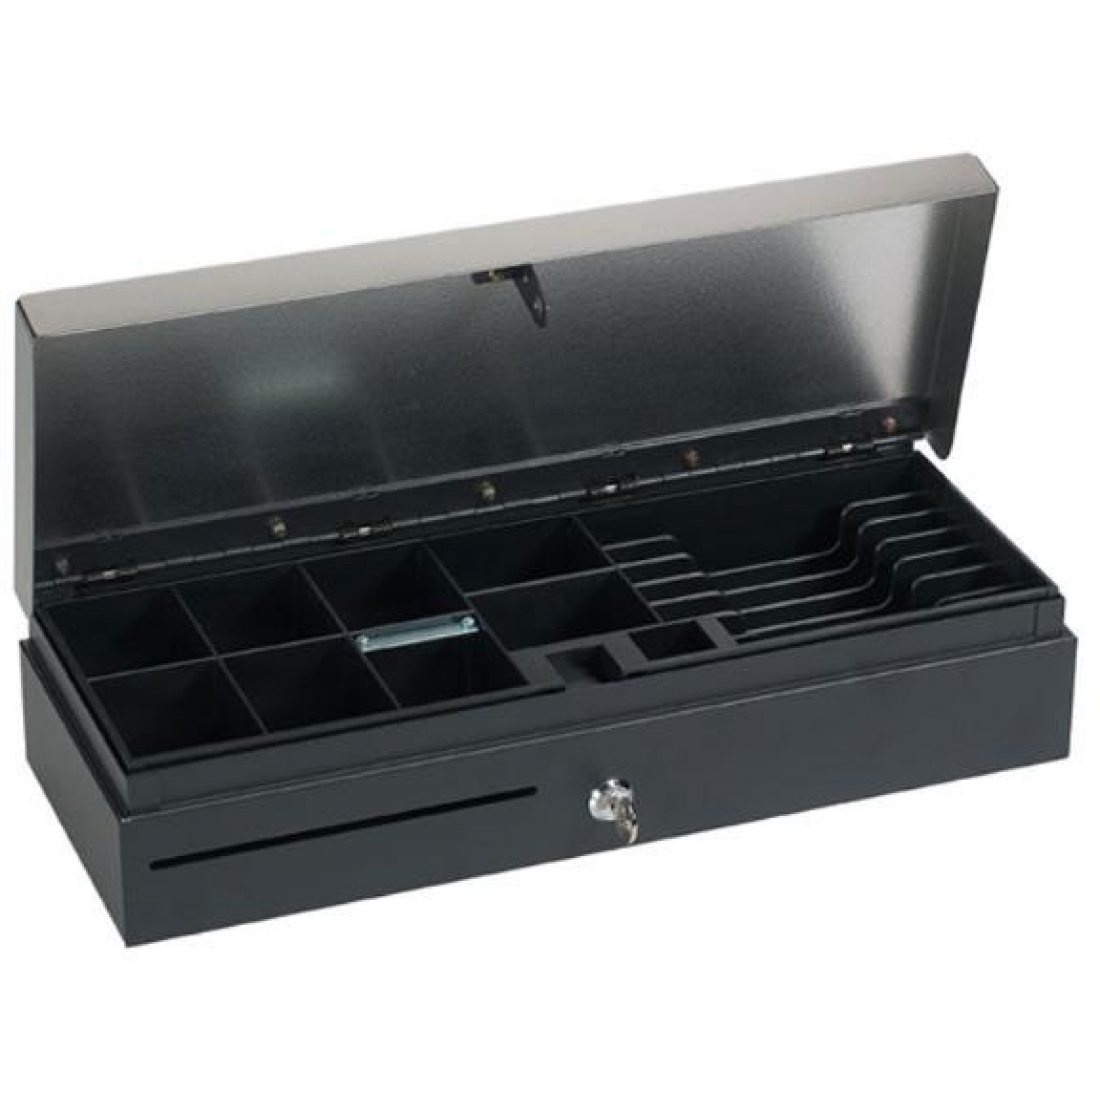 NCR 2185 Flip-Top Cash Drawer, open, with currency tray, viewed from a front-left angle